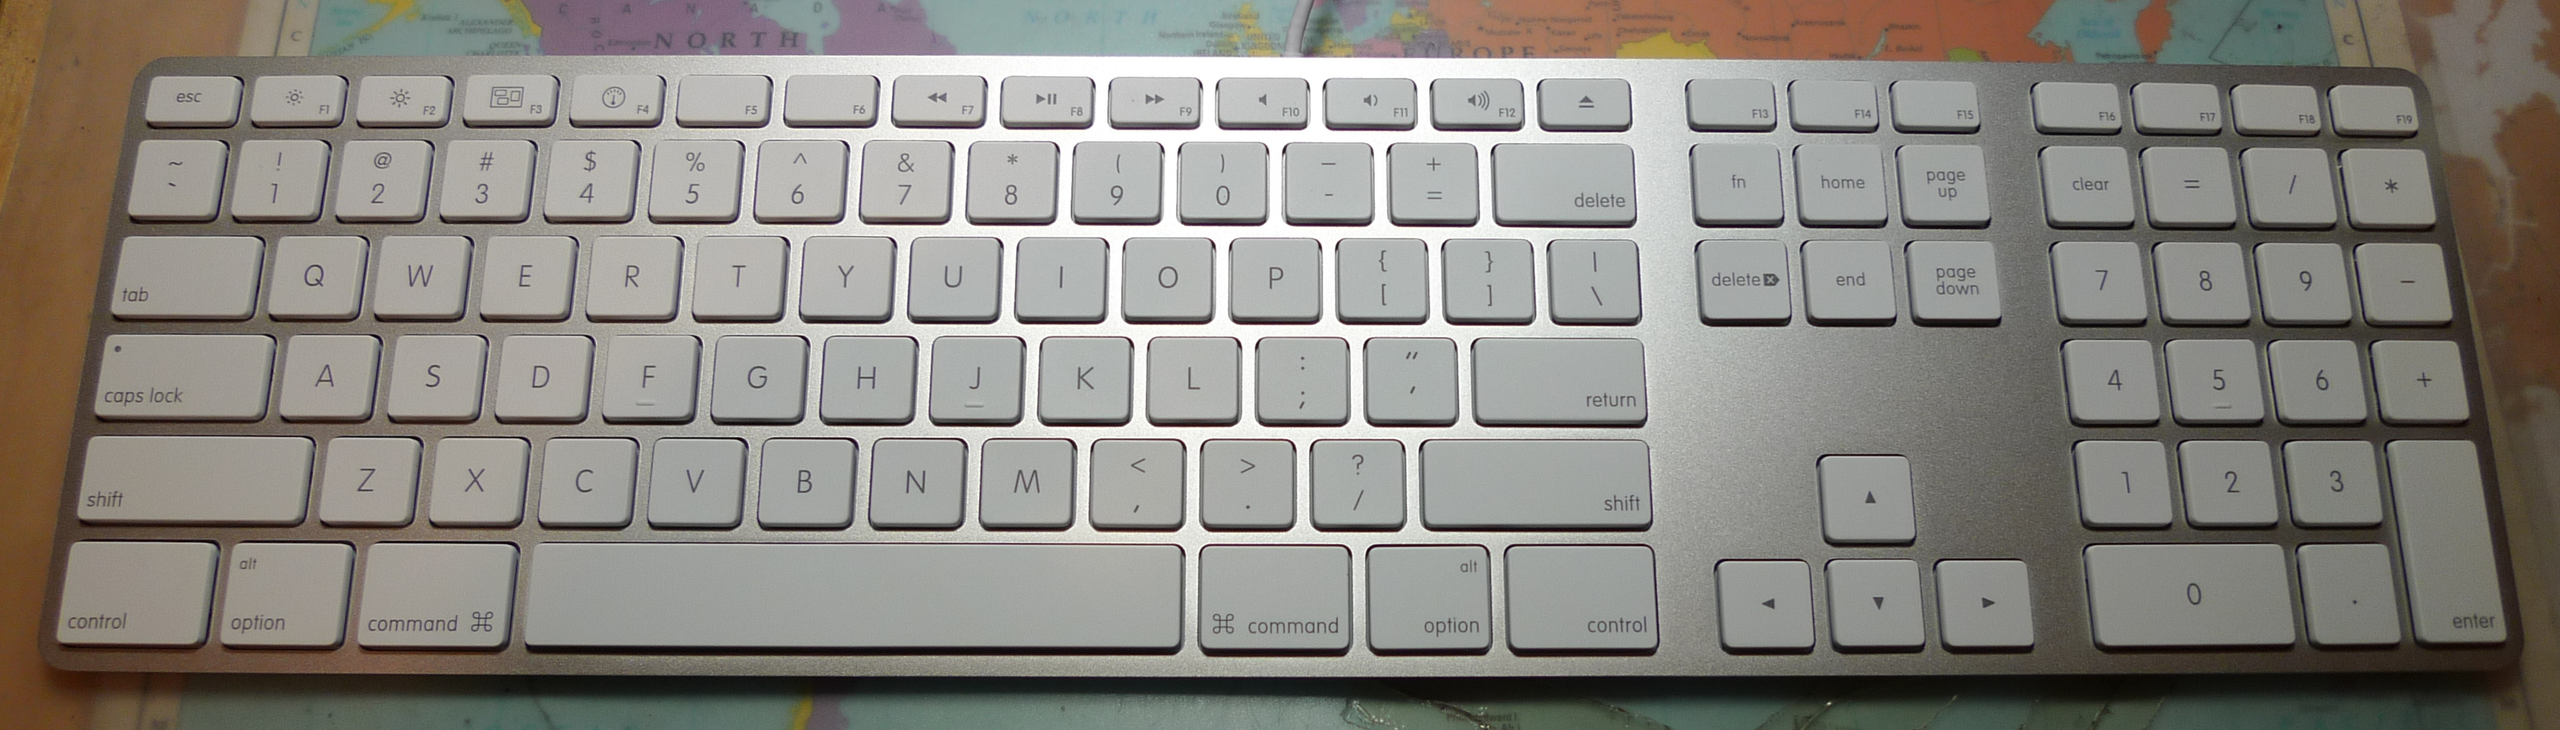 https://upload.wikimedia.org/wikipedia/commons/thumb/e/ea/Apple_iMac_Keyboard_A1243.png/2560px-Apple_iMac_Keyboard_A1243.png